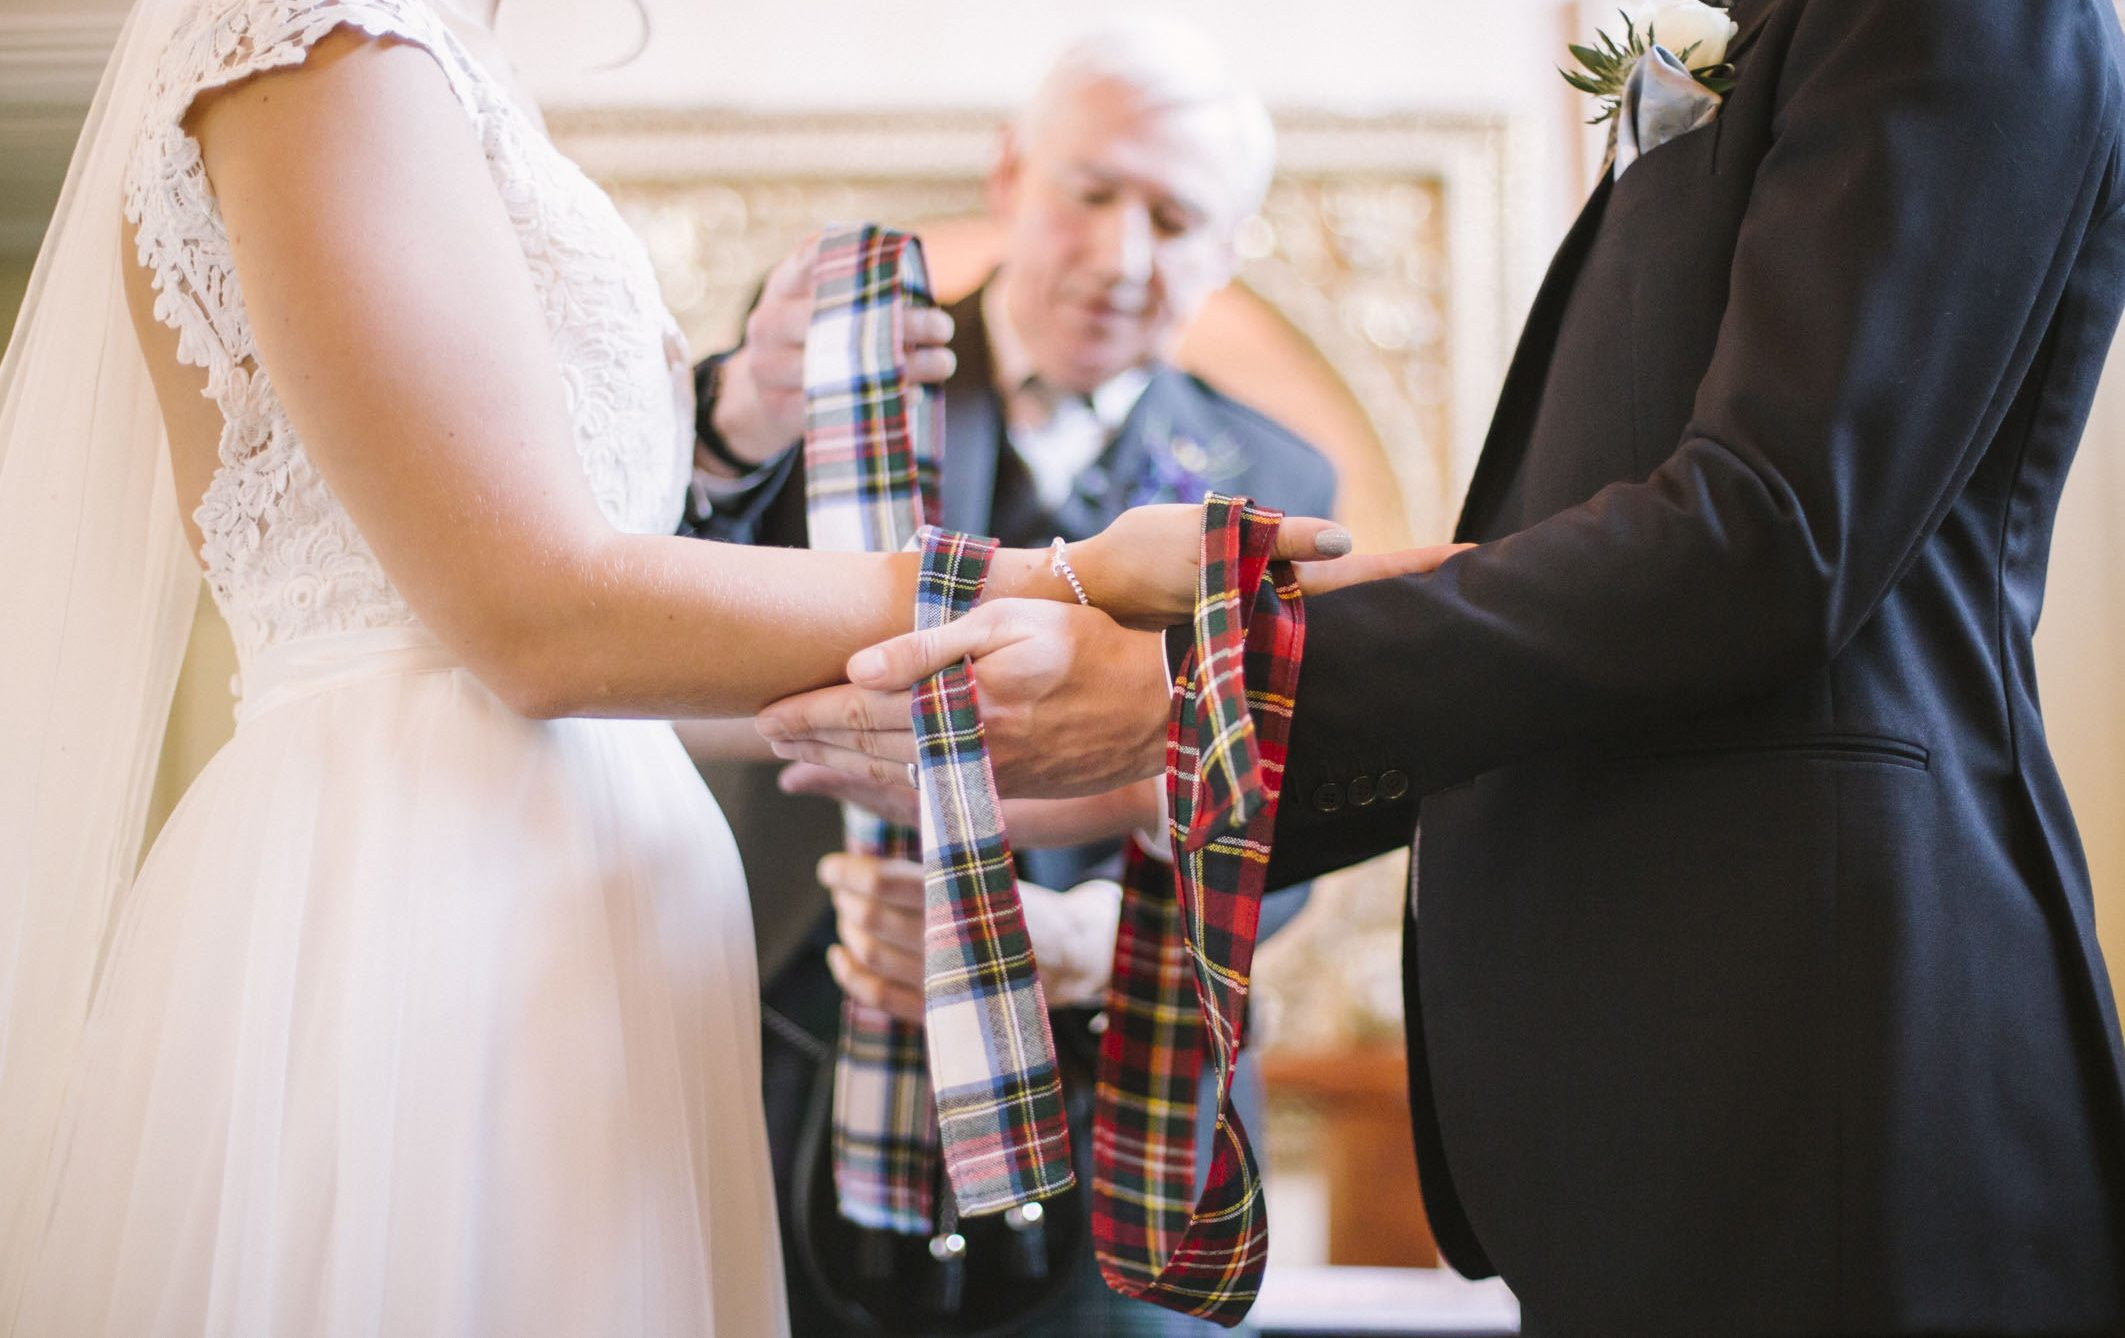 Tie the knot - Scottish Wedding Hand fasting at Elegant Winter Wedding at Balbirnie House | Photography by Ceranna Photo